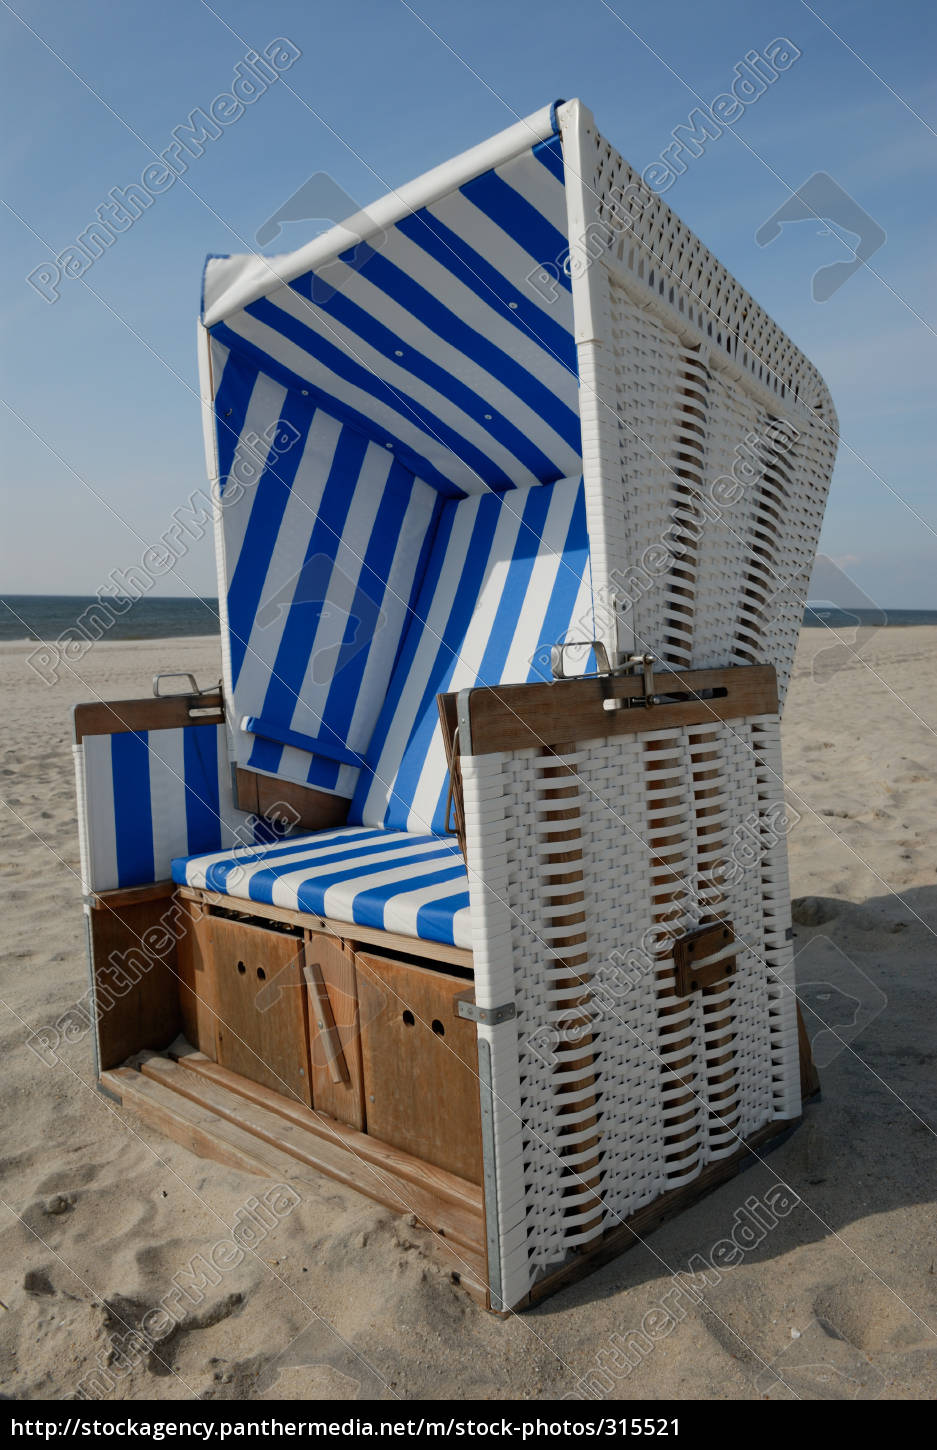 beach, chair - 315521